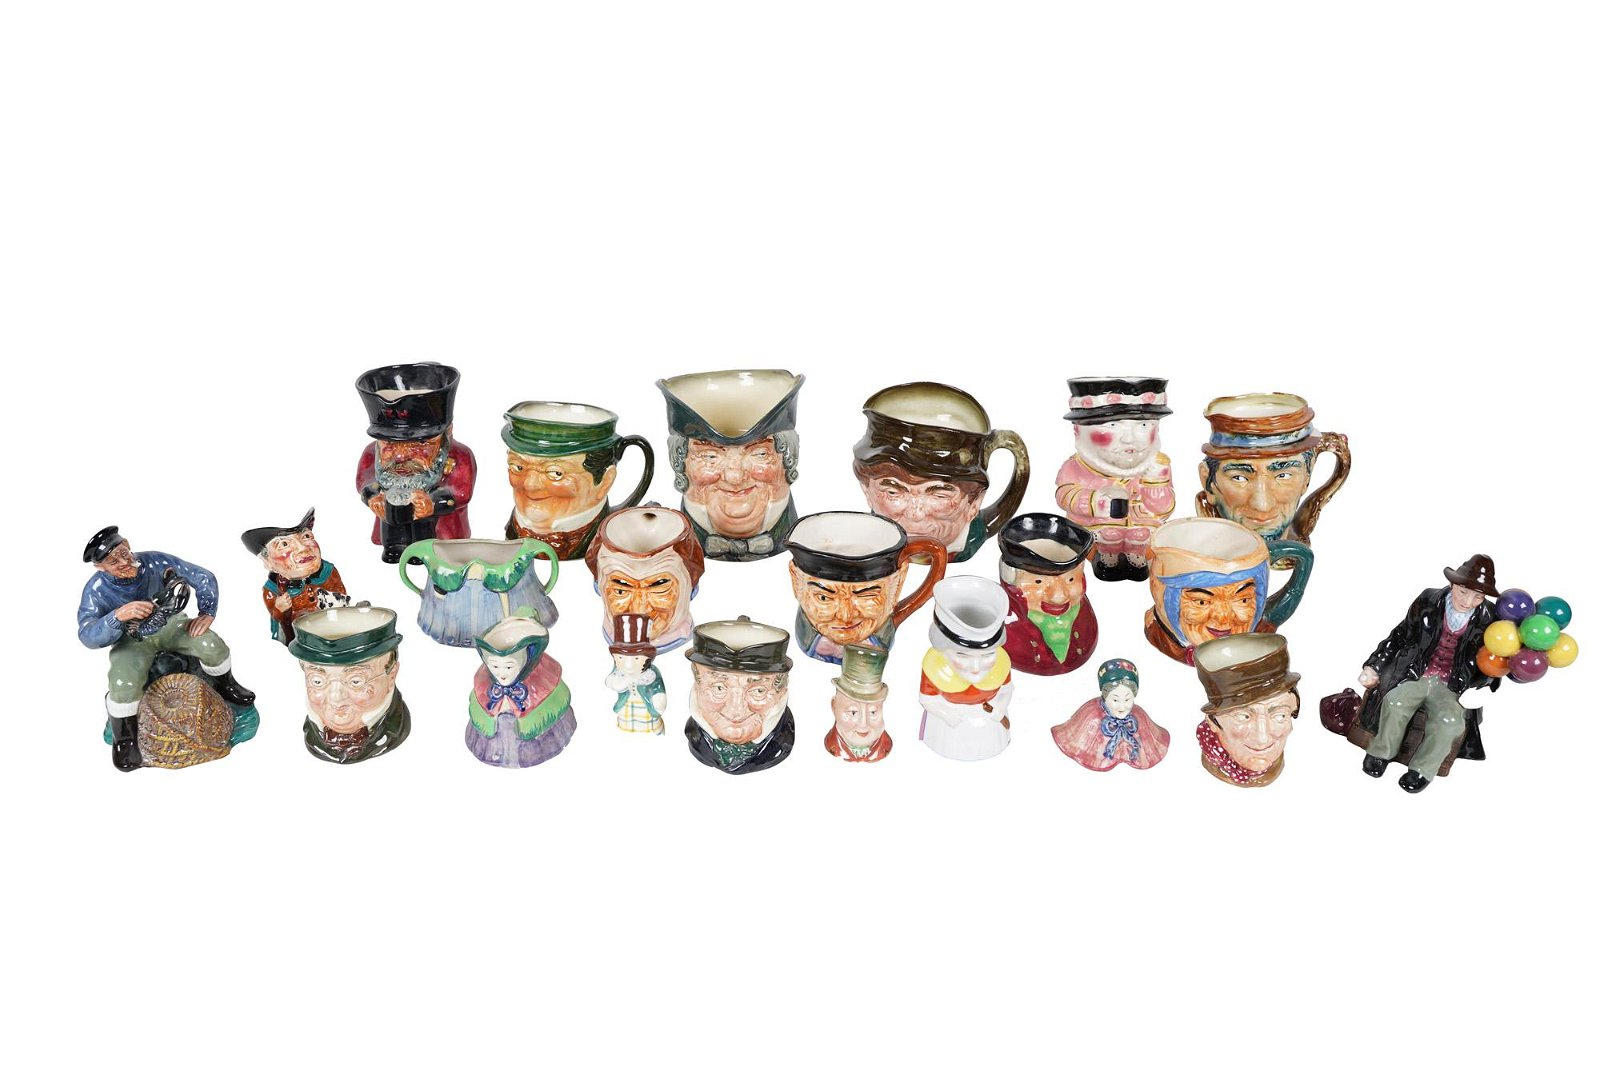 COLLECTION OF TOBY MUGS & FIGURINES